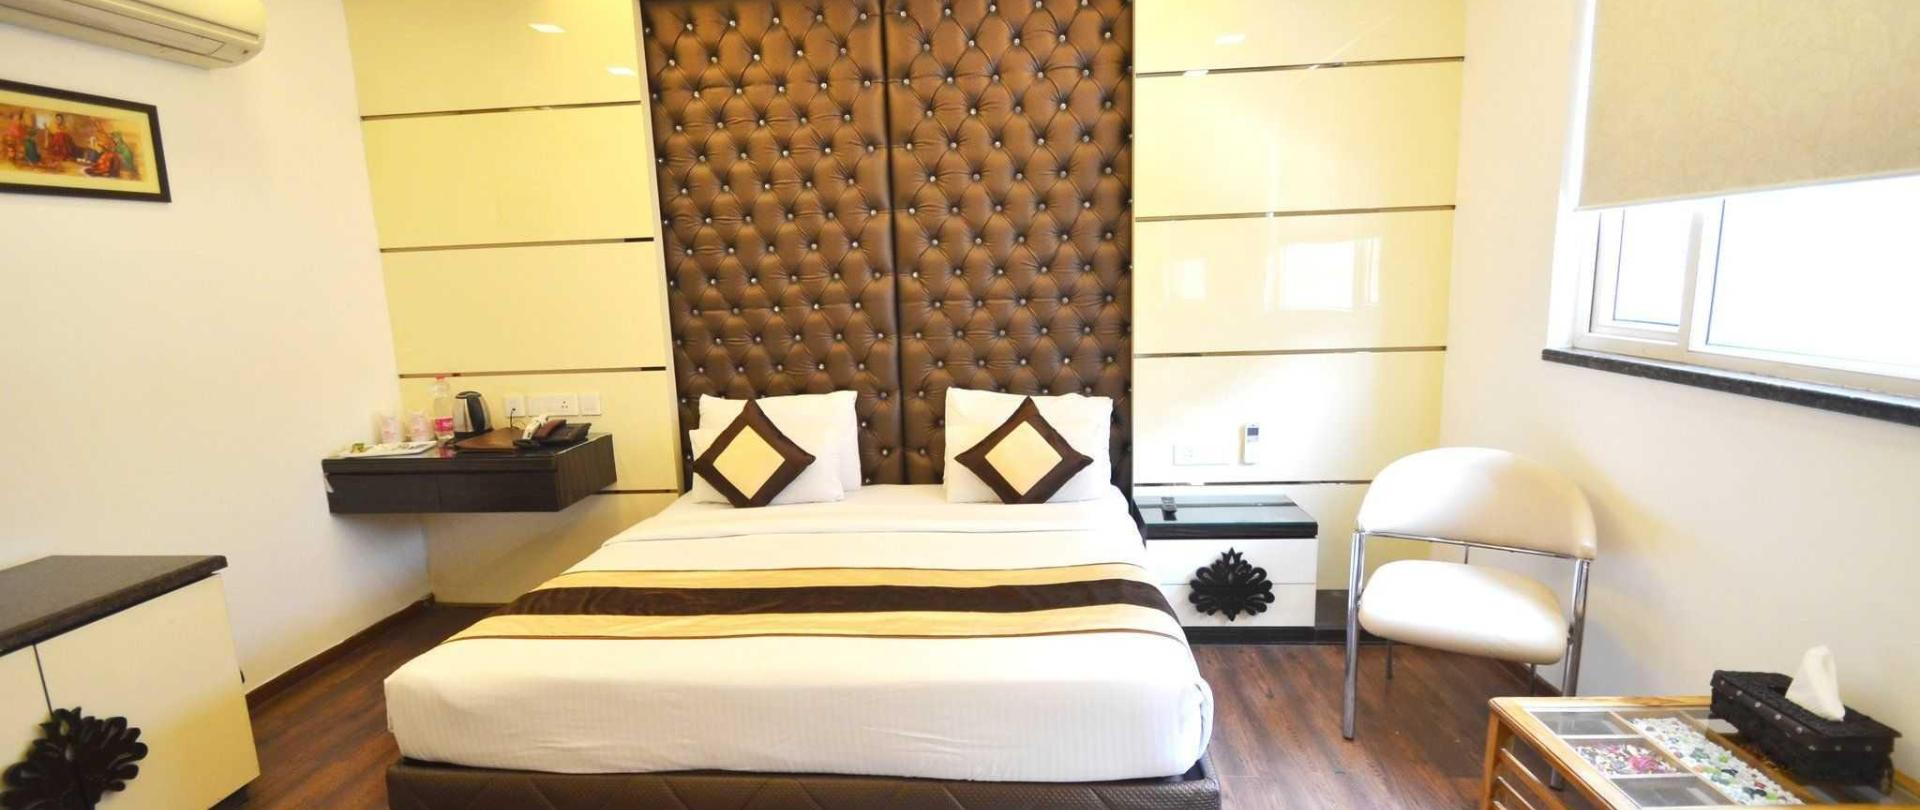 cheap-hotel-in-delhi-3-star-1.JPG